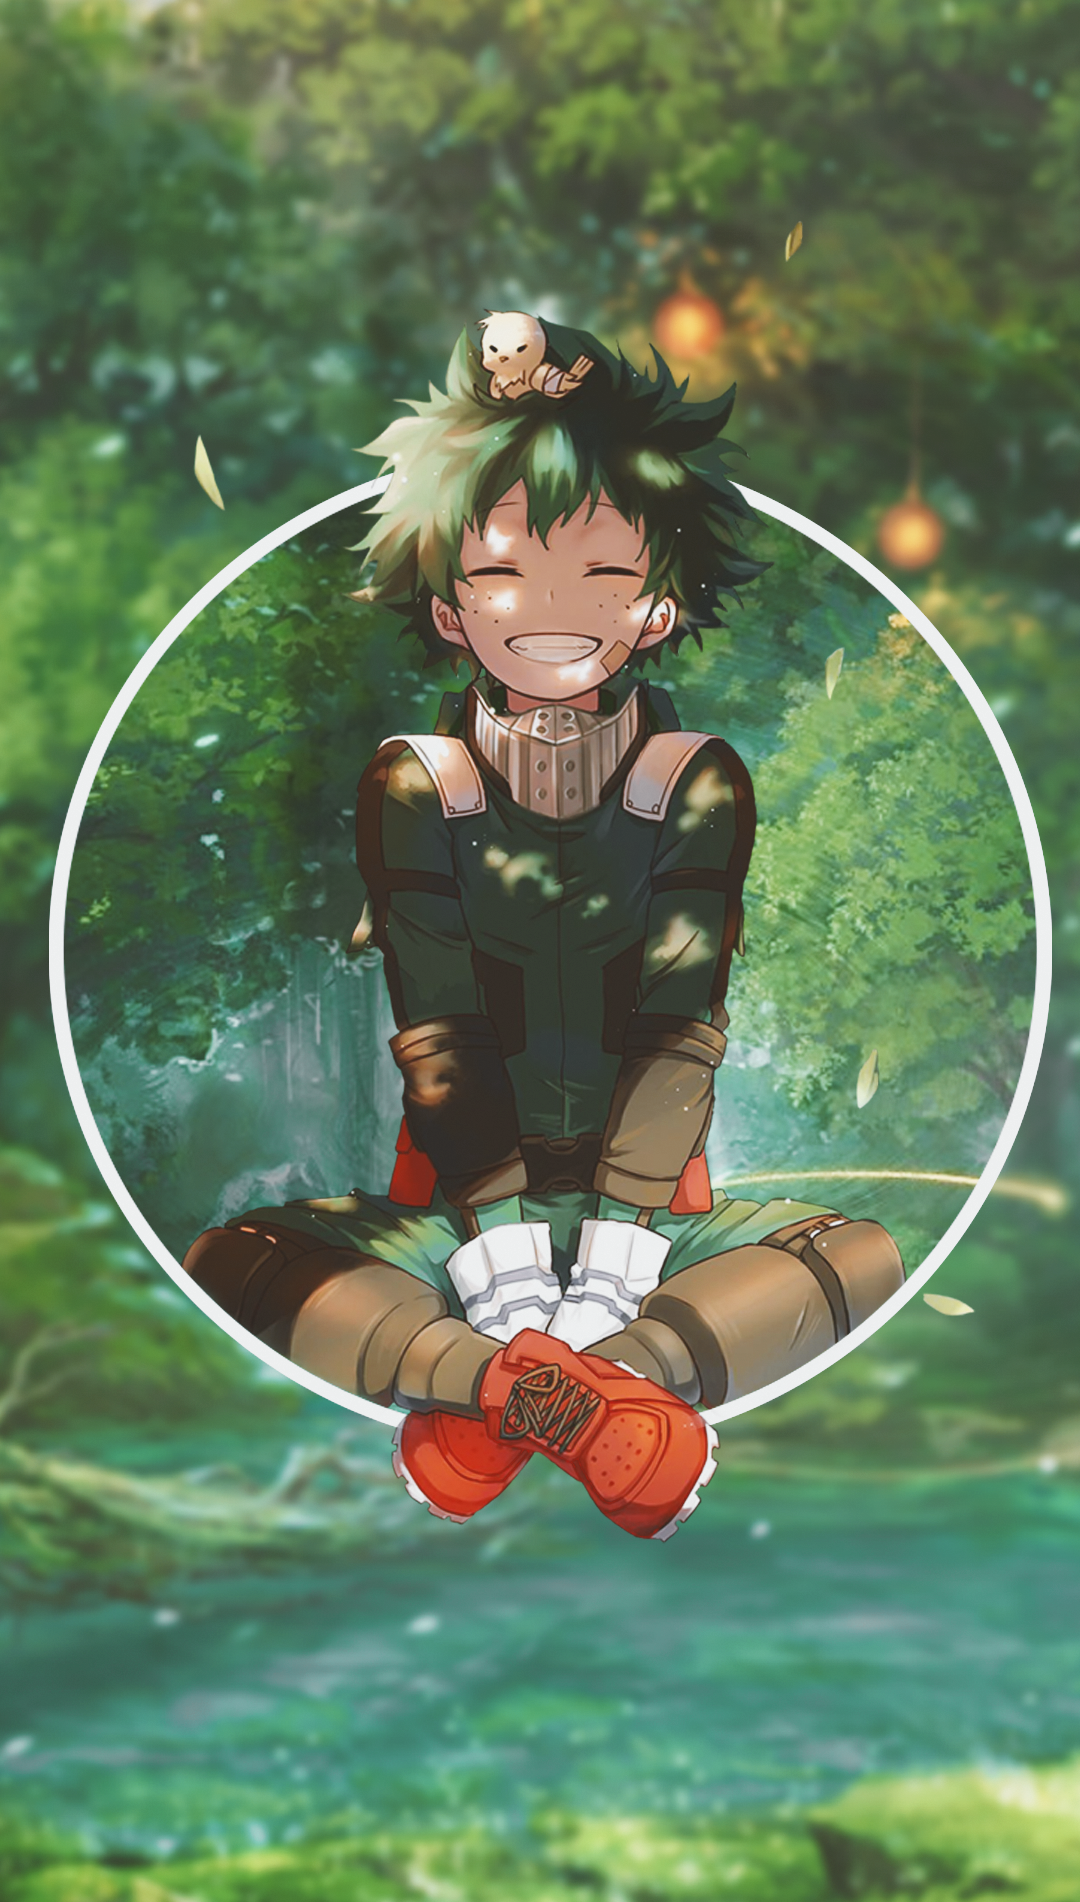 Anime Picture In Picture Boku No Hero Academia Anime Boys Smiling 1080x1902 Wallpaper 5wdzm1 Wallhaven Cc Anime Boy Smile Hero Hero Wallpaper